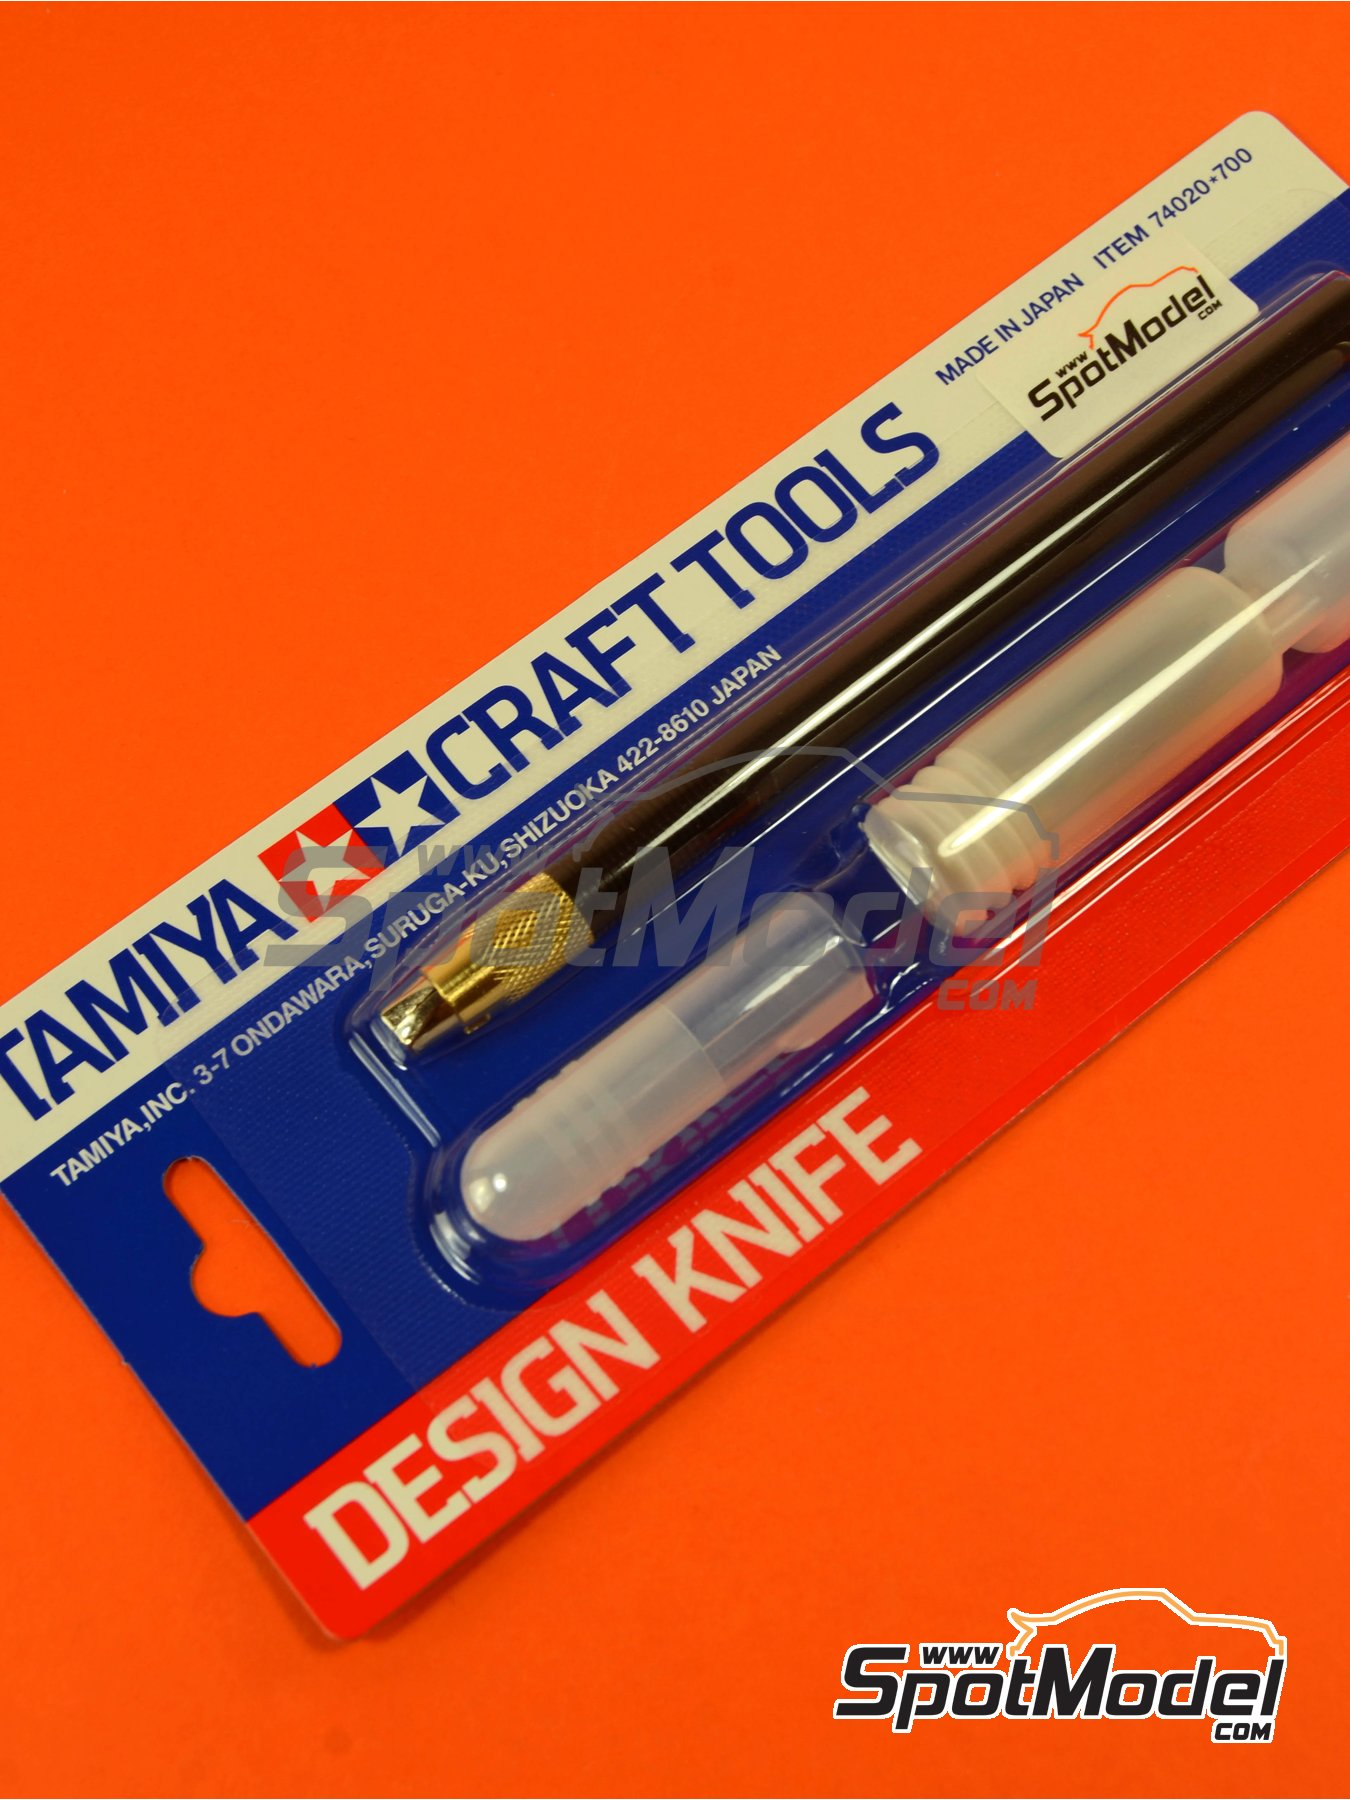 Design knife craft tools | Tools manufactured by Tamiya (ref.TAM74020) image